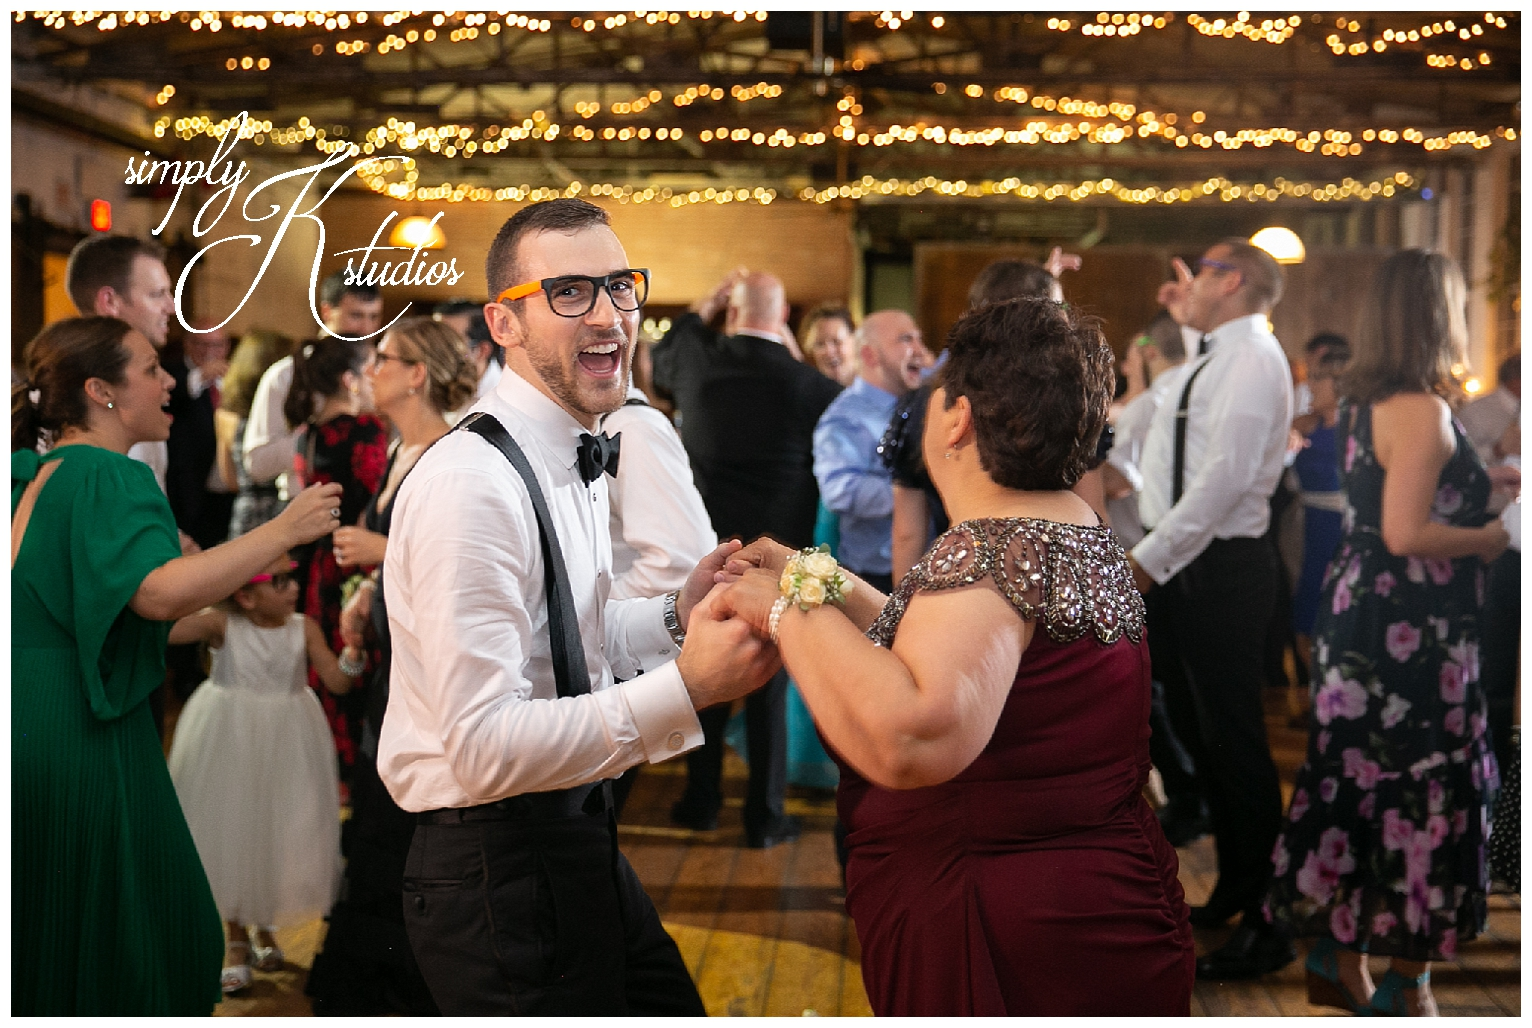 Dancing at a Wedding .jpg